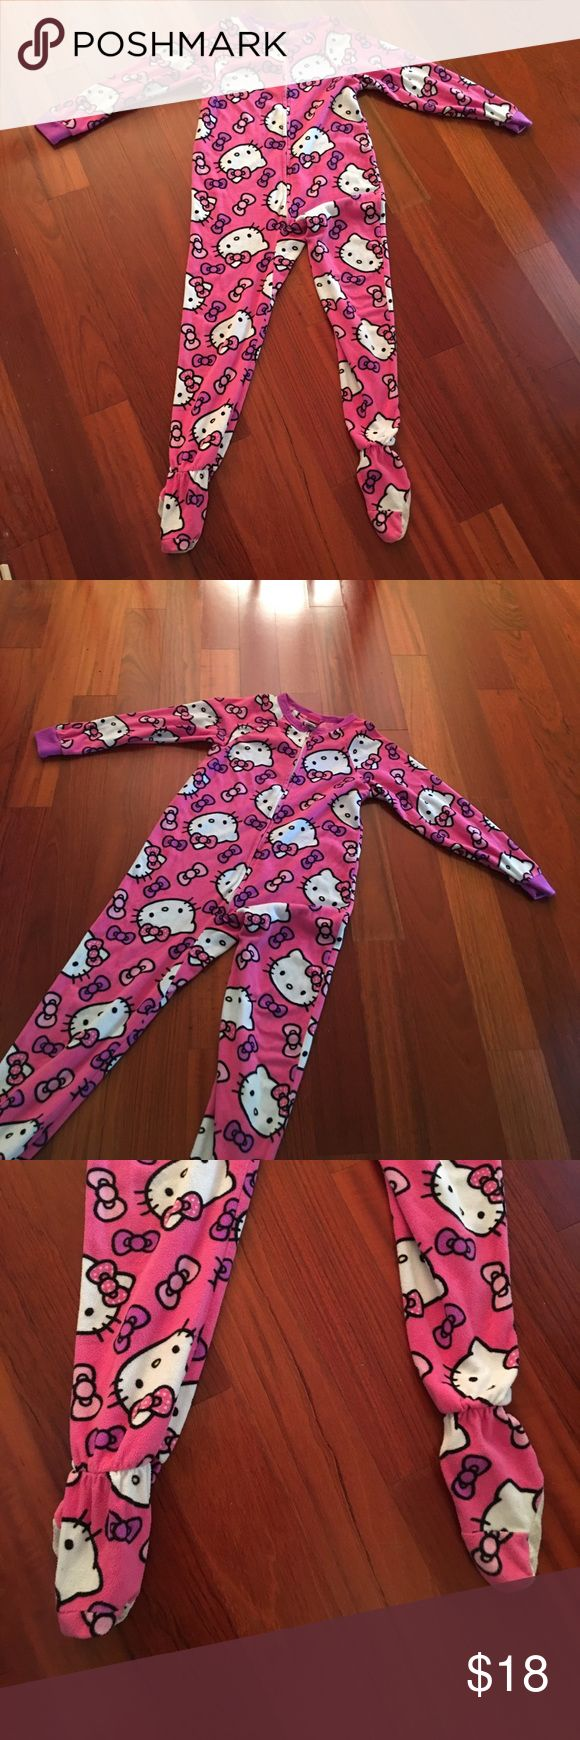 Hello Kitty onesie pajama outfit size 8 Hello Kitty onesie pajama outfit zip up front. Size 8 in little girls clothing. EUC only wear is minimal to the feet. In excellent preloved condition. Flannel material very warm. Offers welcome and all purchases receive free gift 🎁! Get it while you can this will sell quickly. Hello Kitty Pajamas